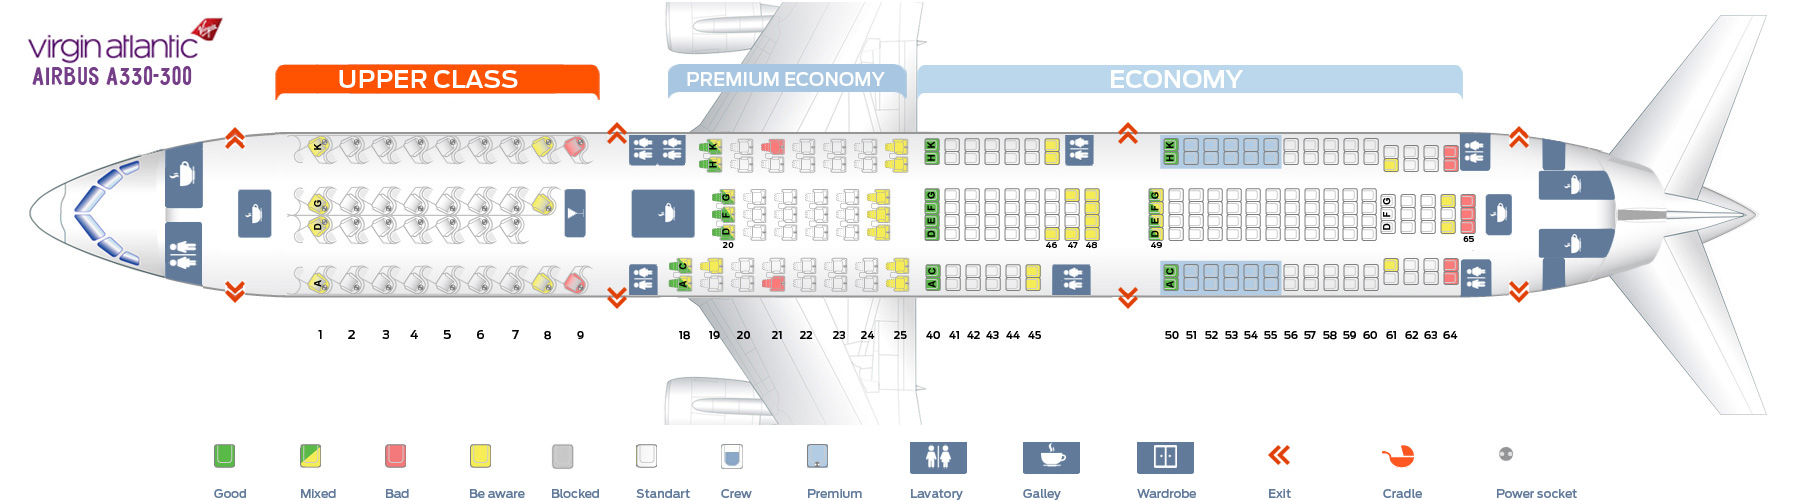 Airbus A330 Seat Map Seat map Airbus A330 300 Virgin Atlantic. Best seats in plane